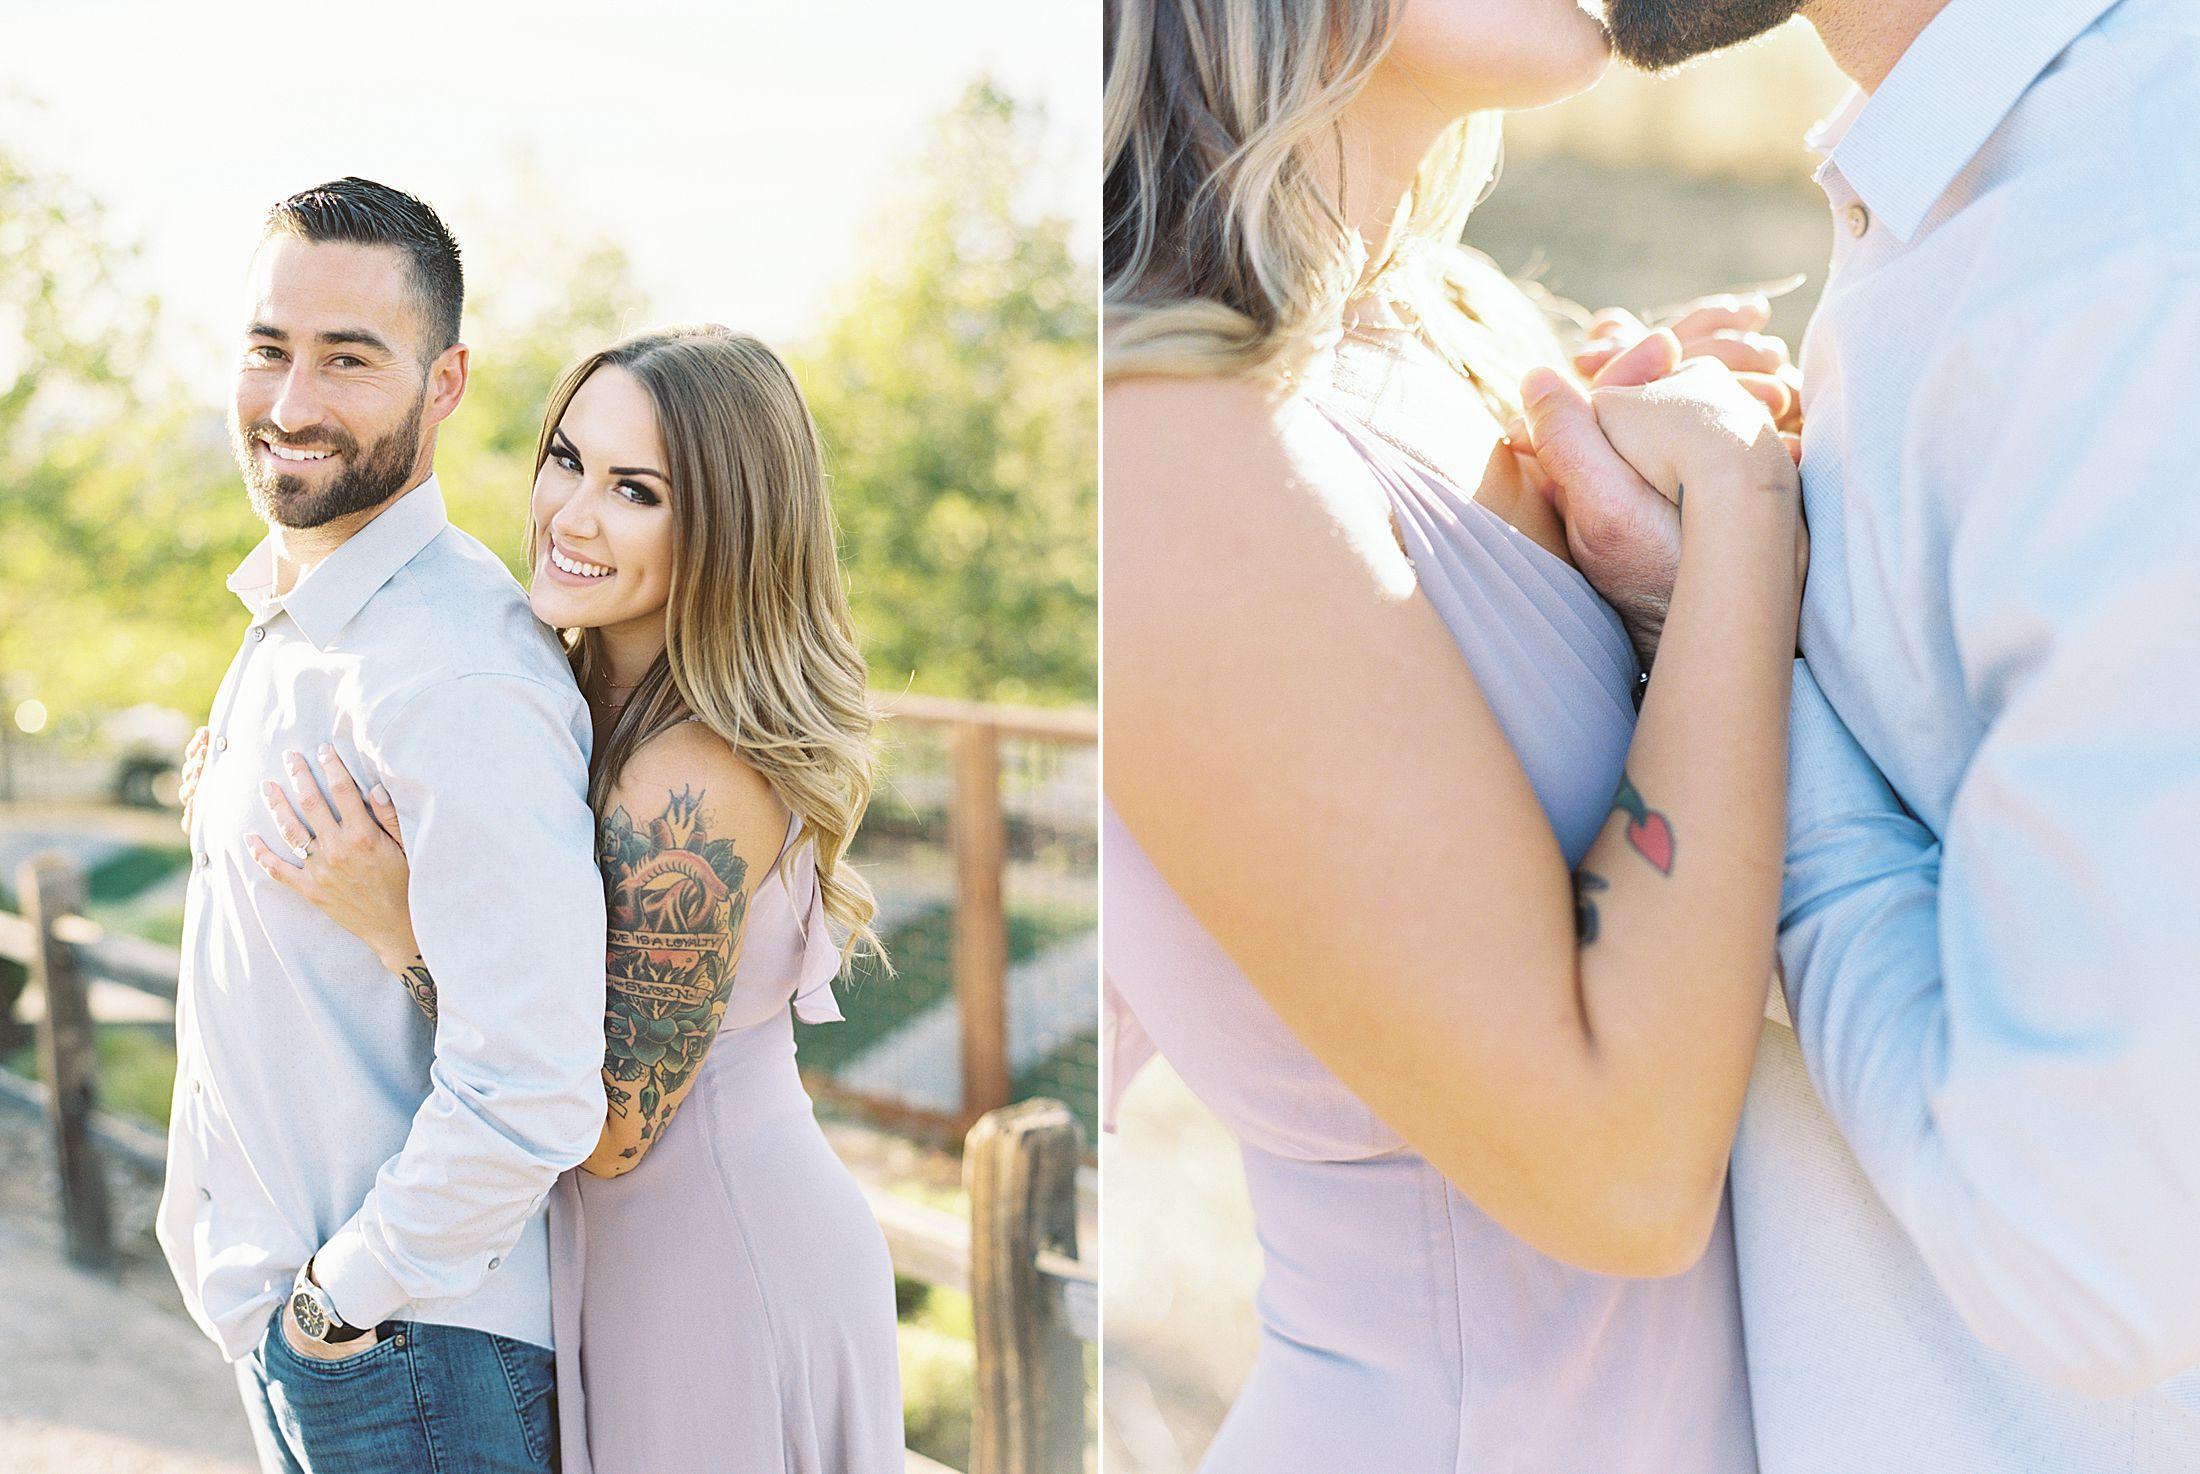 Helwig Winery Engagement Session - Steffanie and Rich - Jenn Robirds Events - Ashley Baumgartner - Sacramento Wedding Photographer - Private Estate Wedding Photographer - Helwig WInery Wedding_0073.jpg